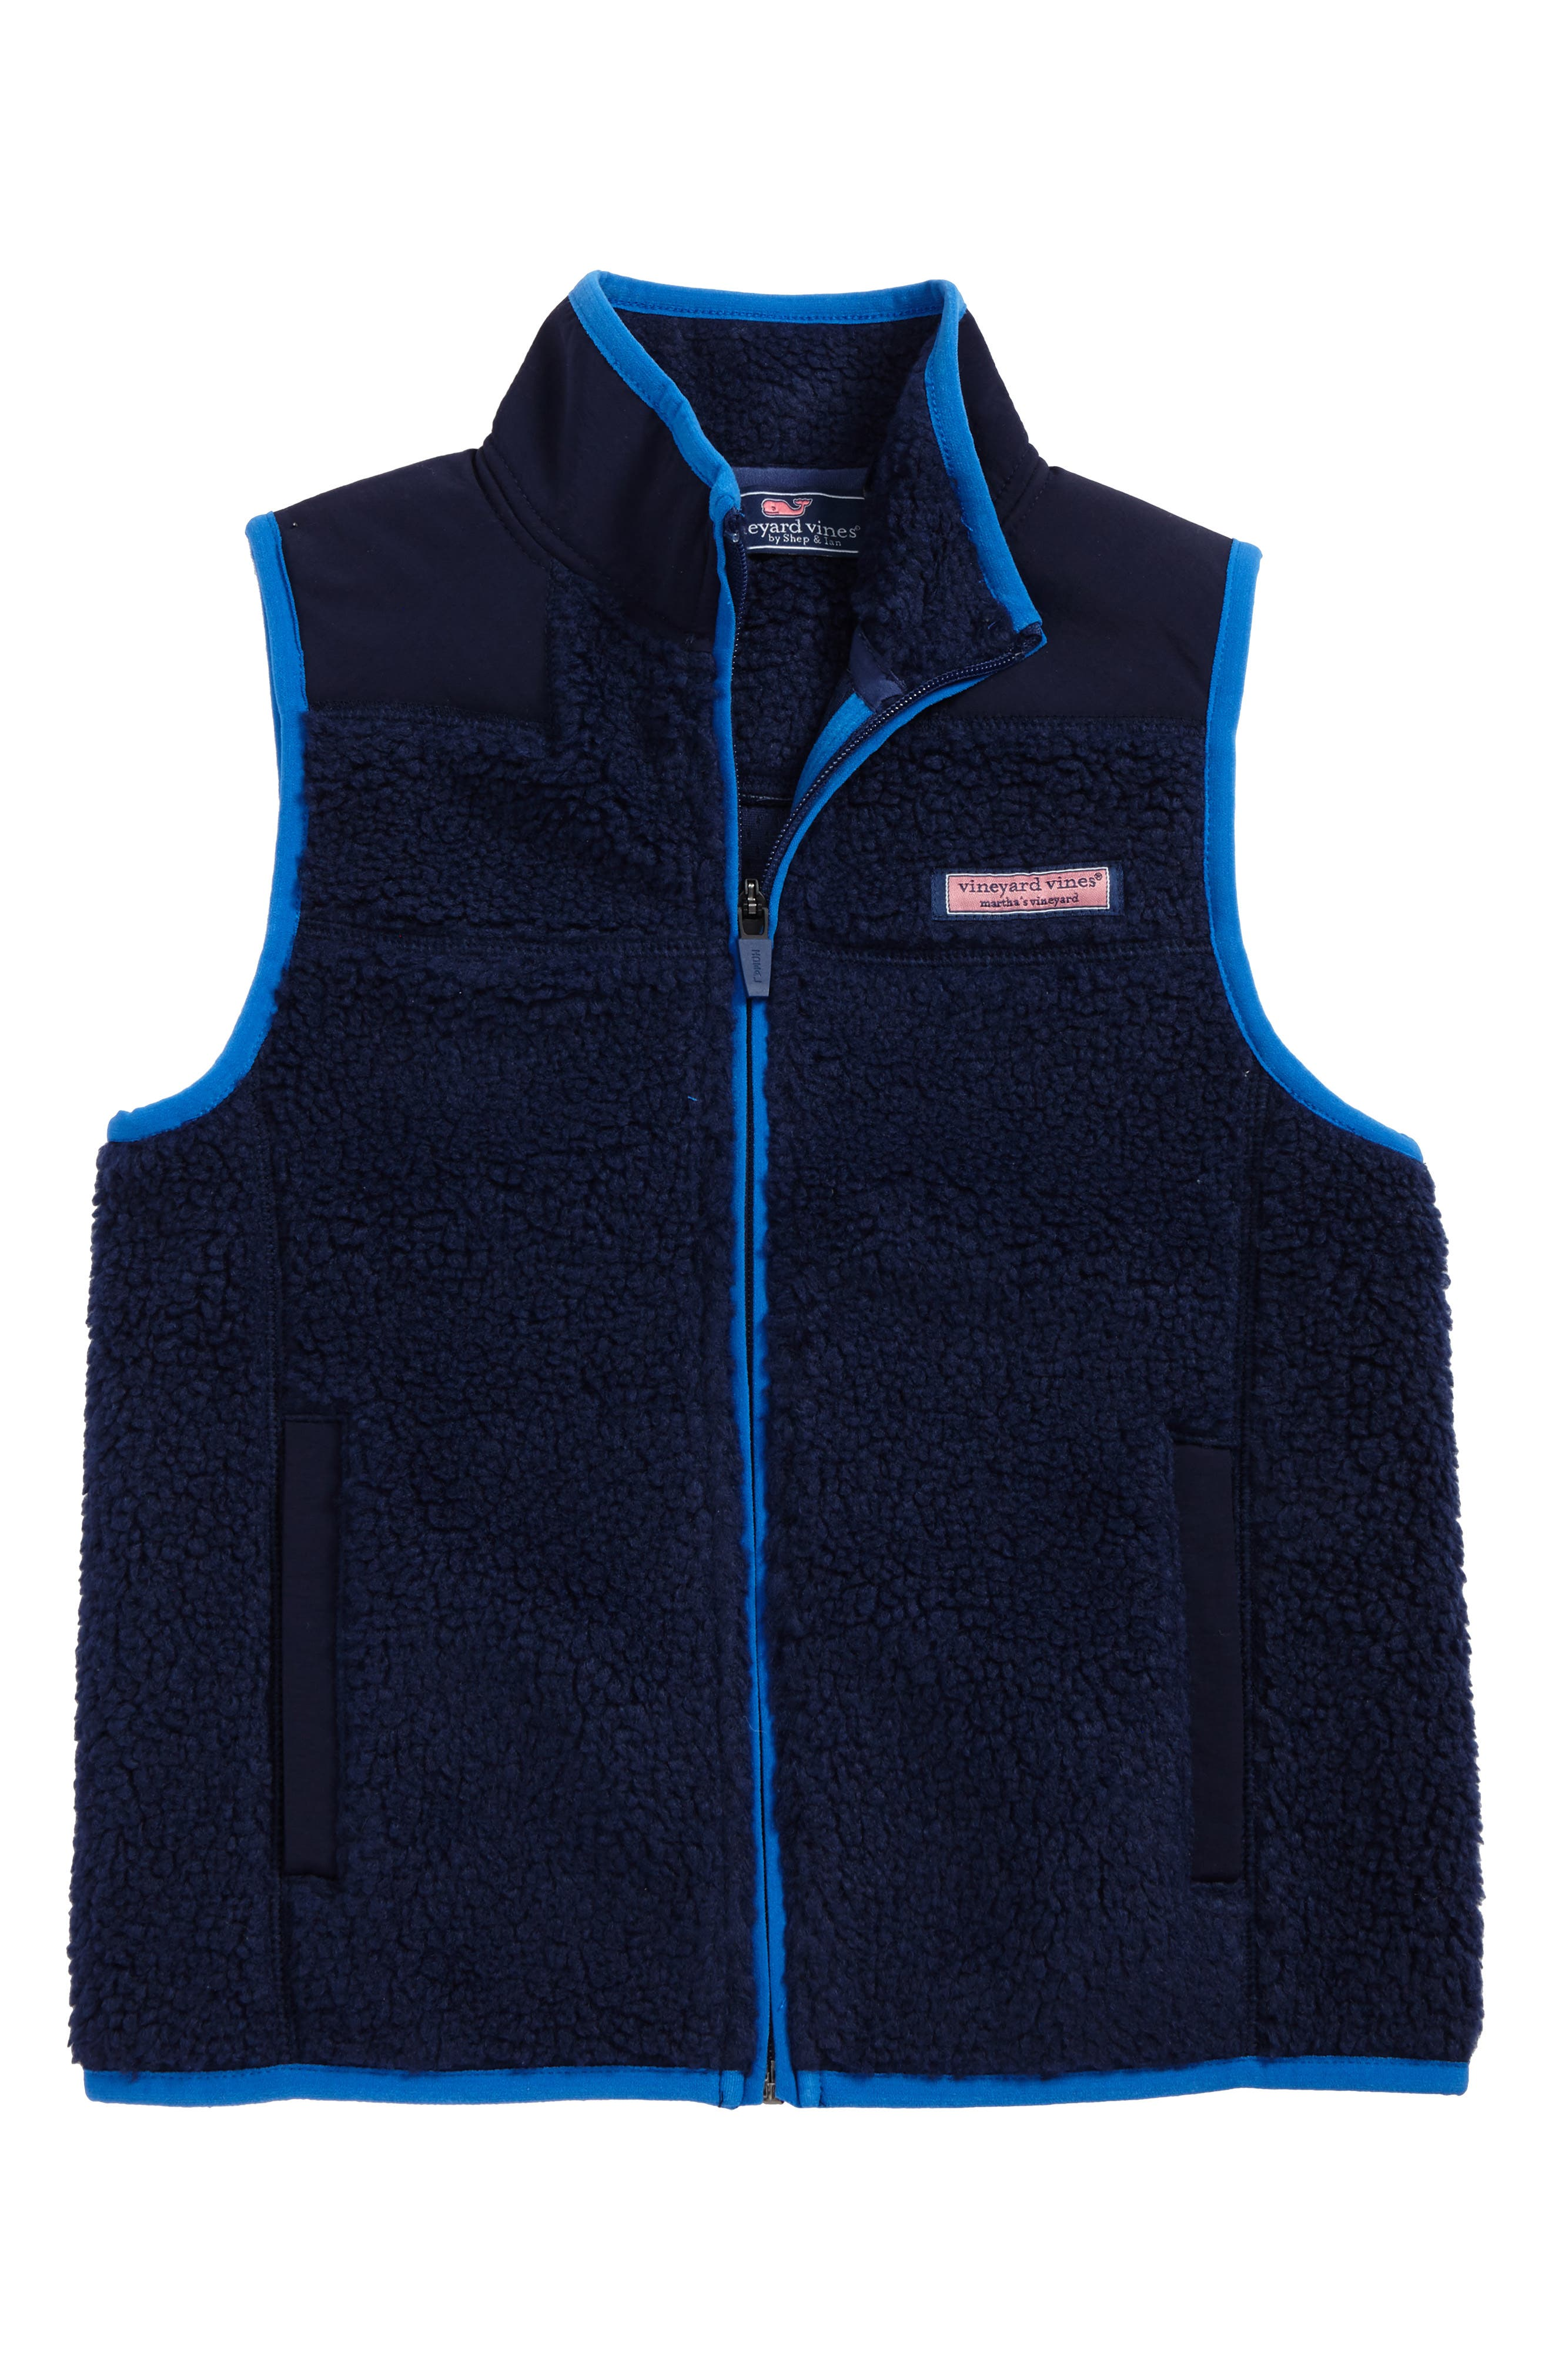 Alternate Image 1 Selected - vineyard vines Fleece Zip Vest (Toddler Boys & Little Boys)